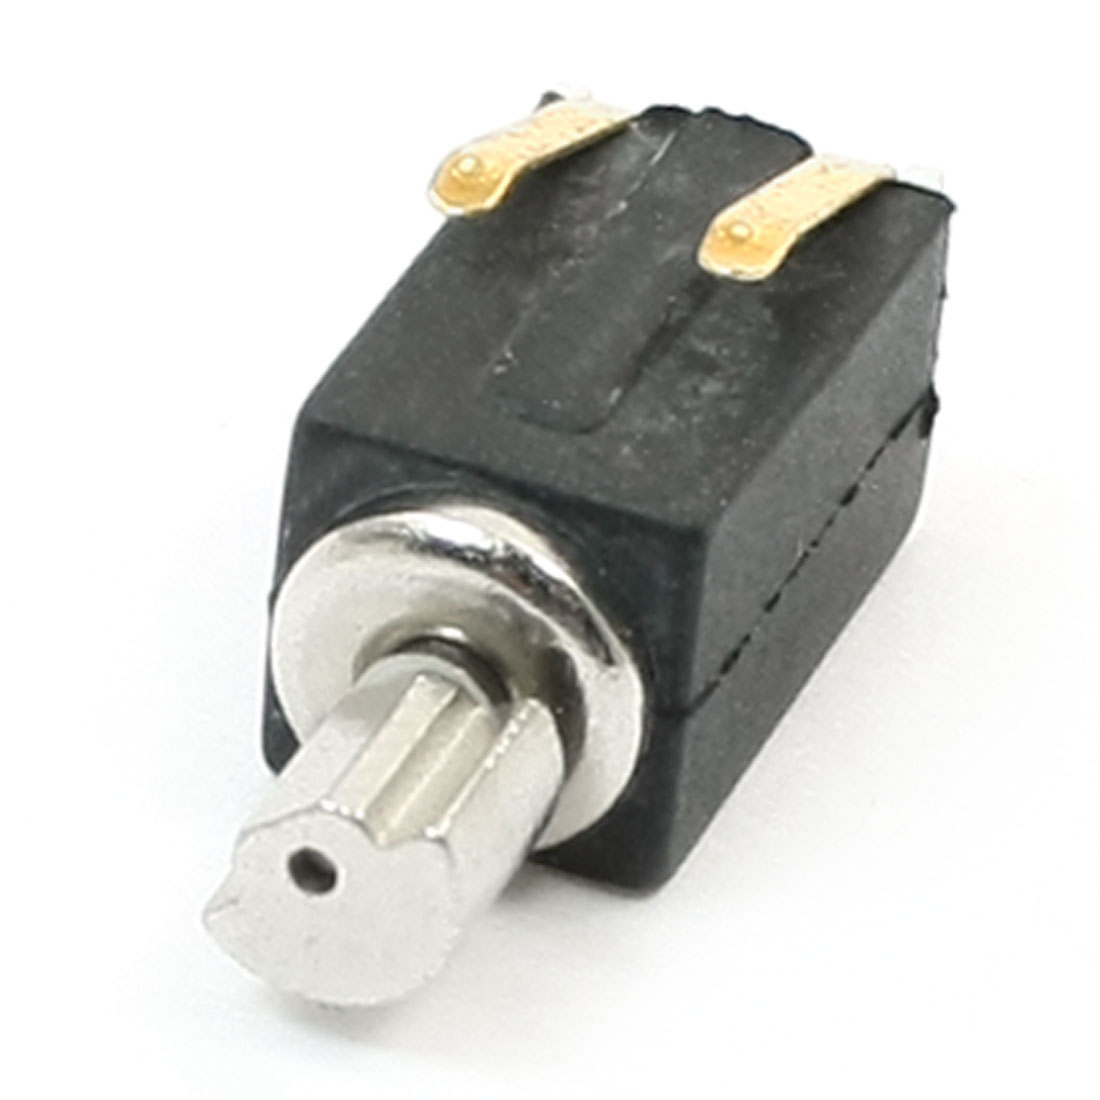 7mmx12mm Vibration Motor w Spring Contacts 3V DC 10000rpm Rated Speed